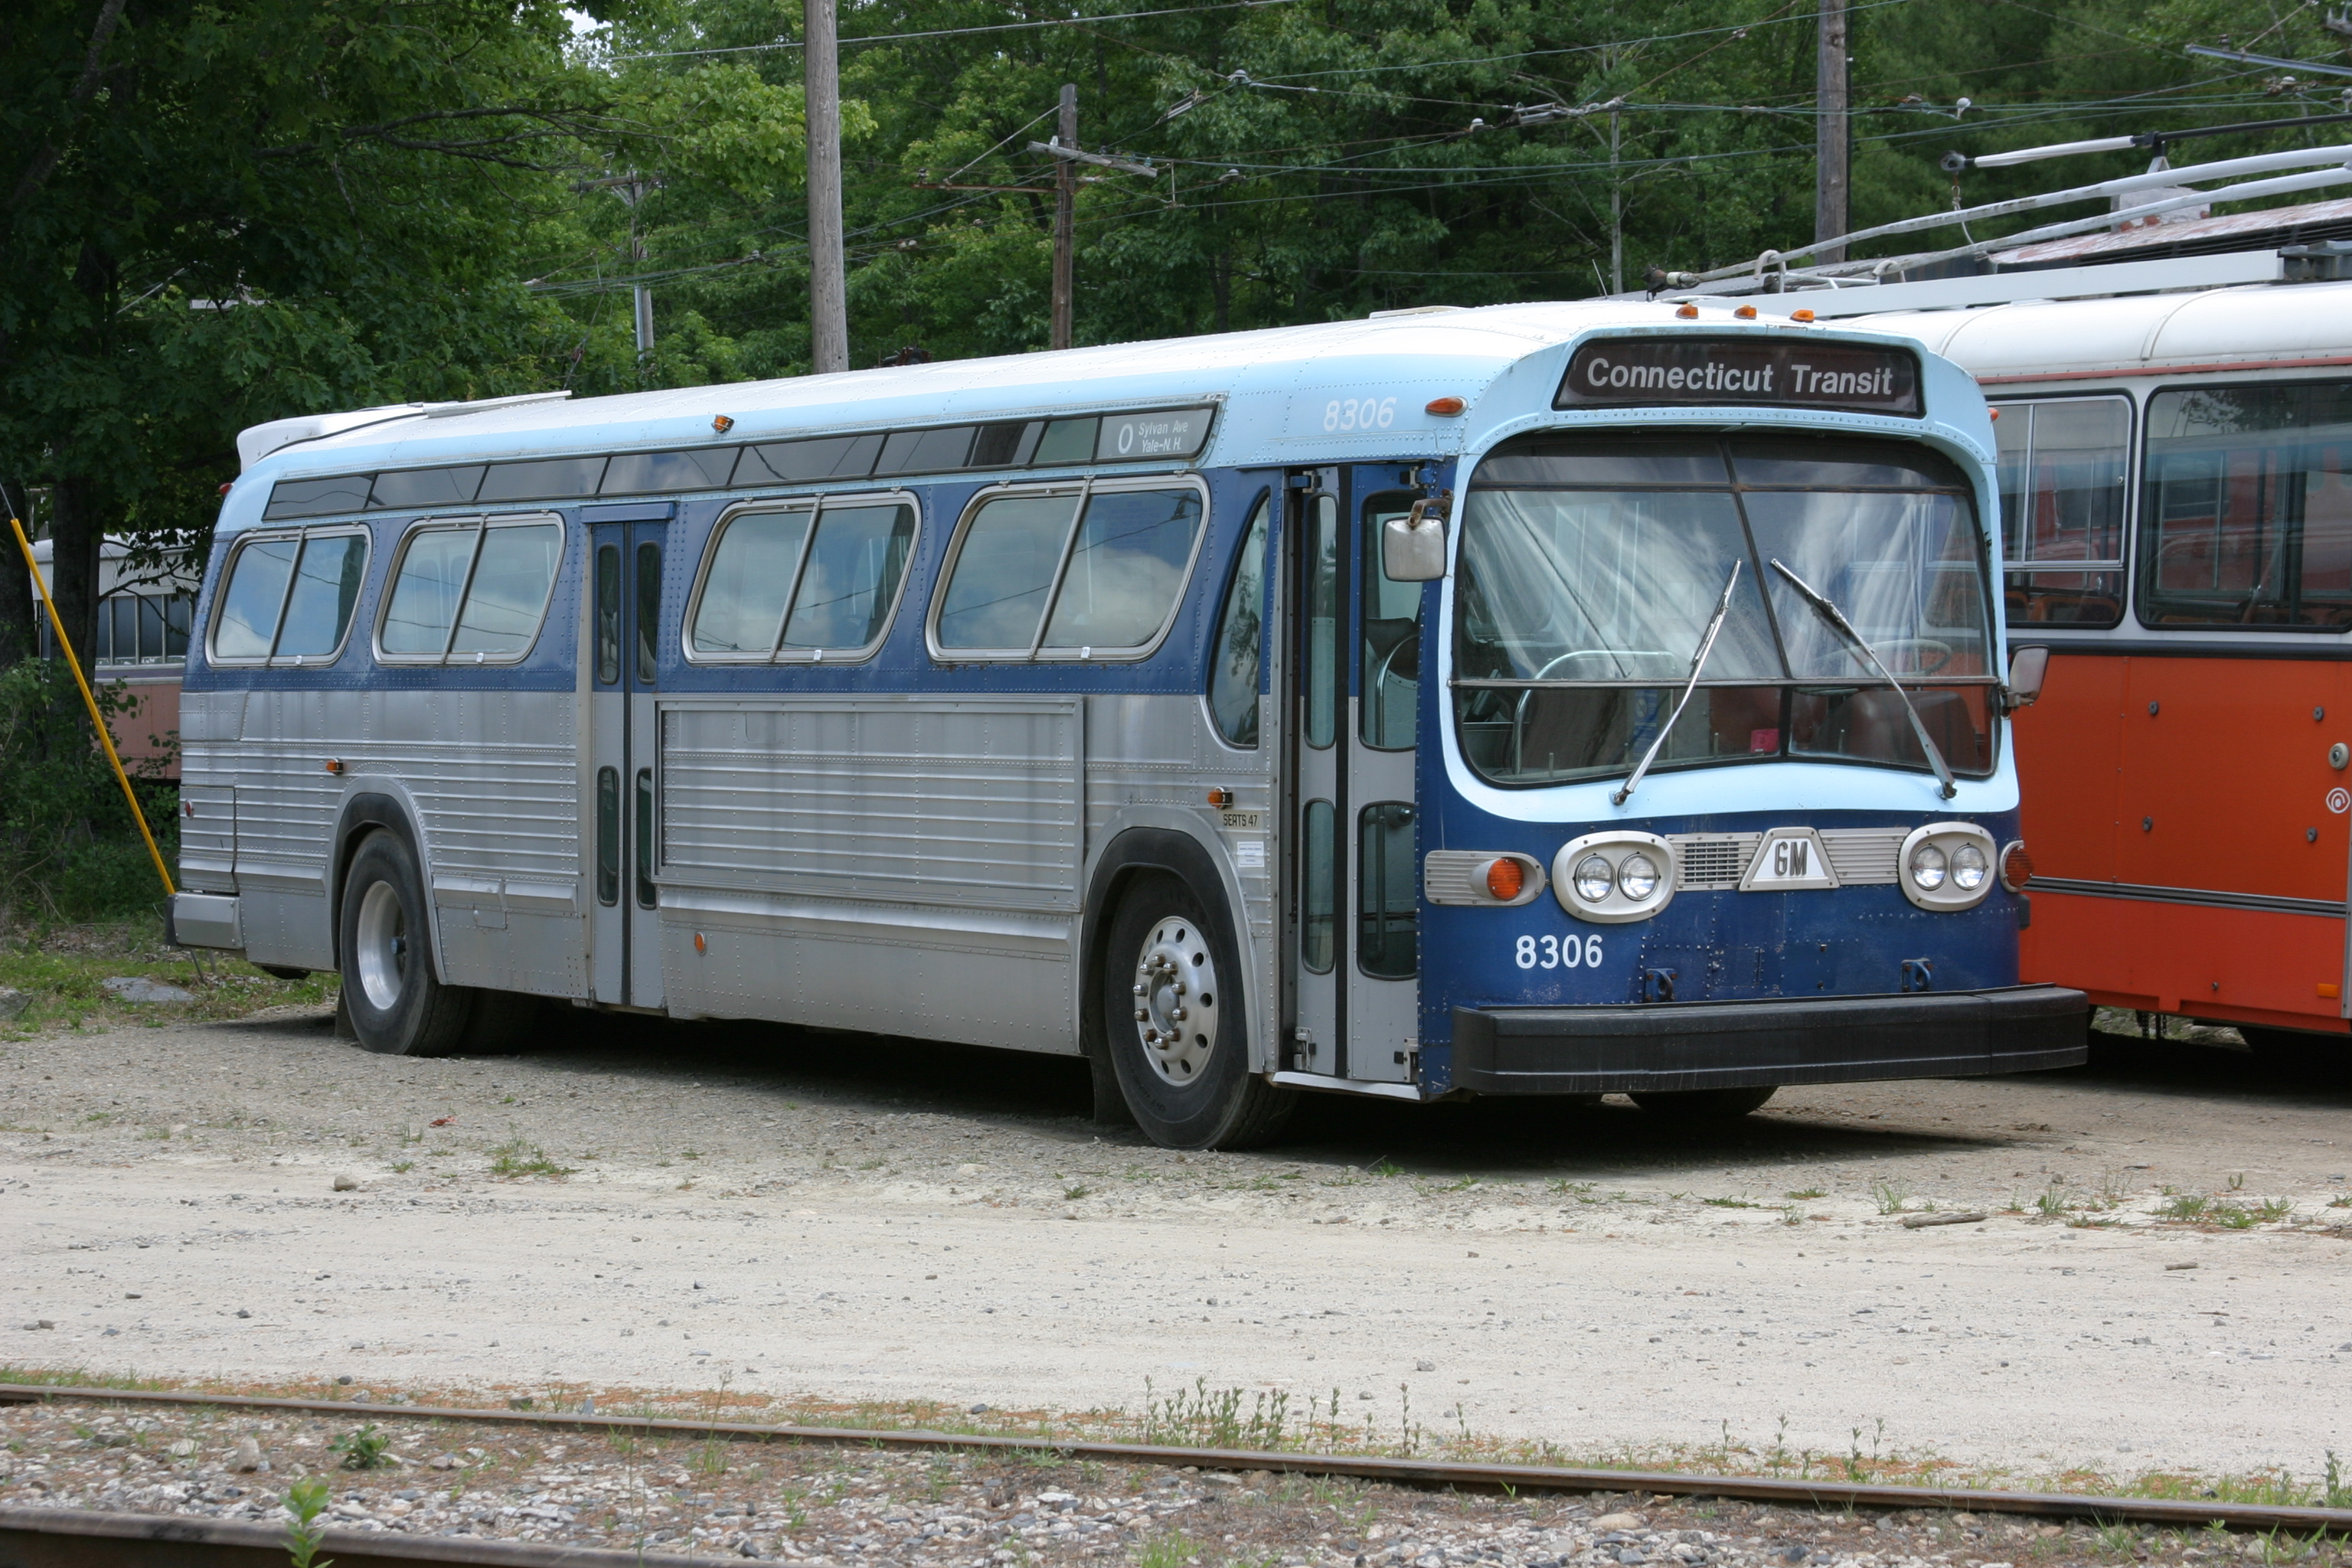 File:CT Transit 8306 at Seashore Trolley Museum, June 2007.jpg - Wikimedia Commons